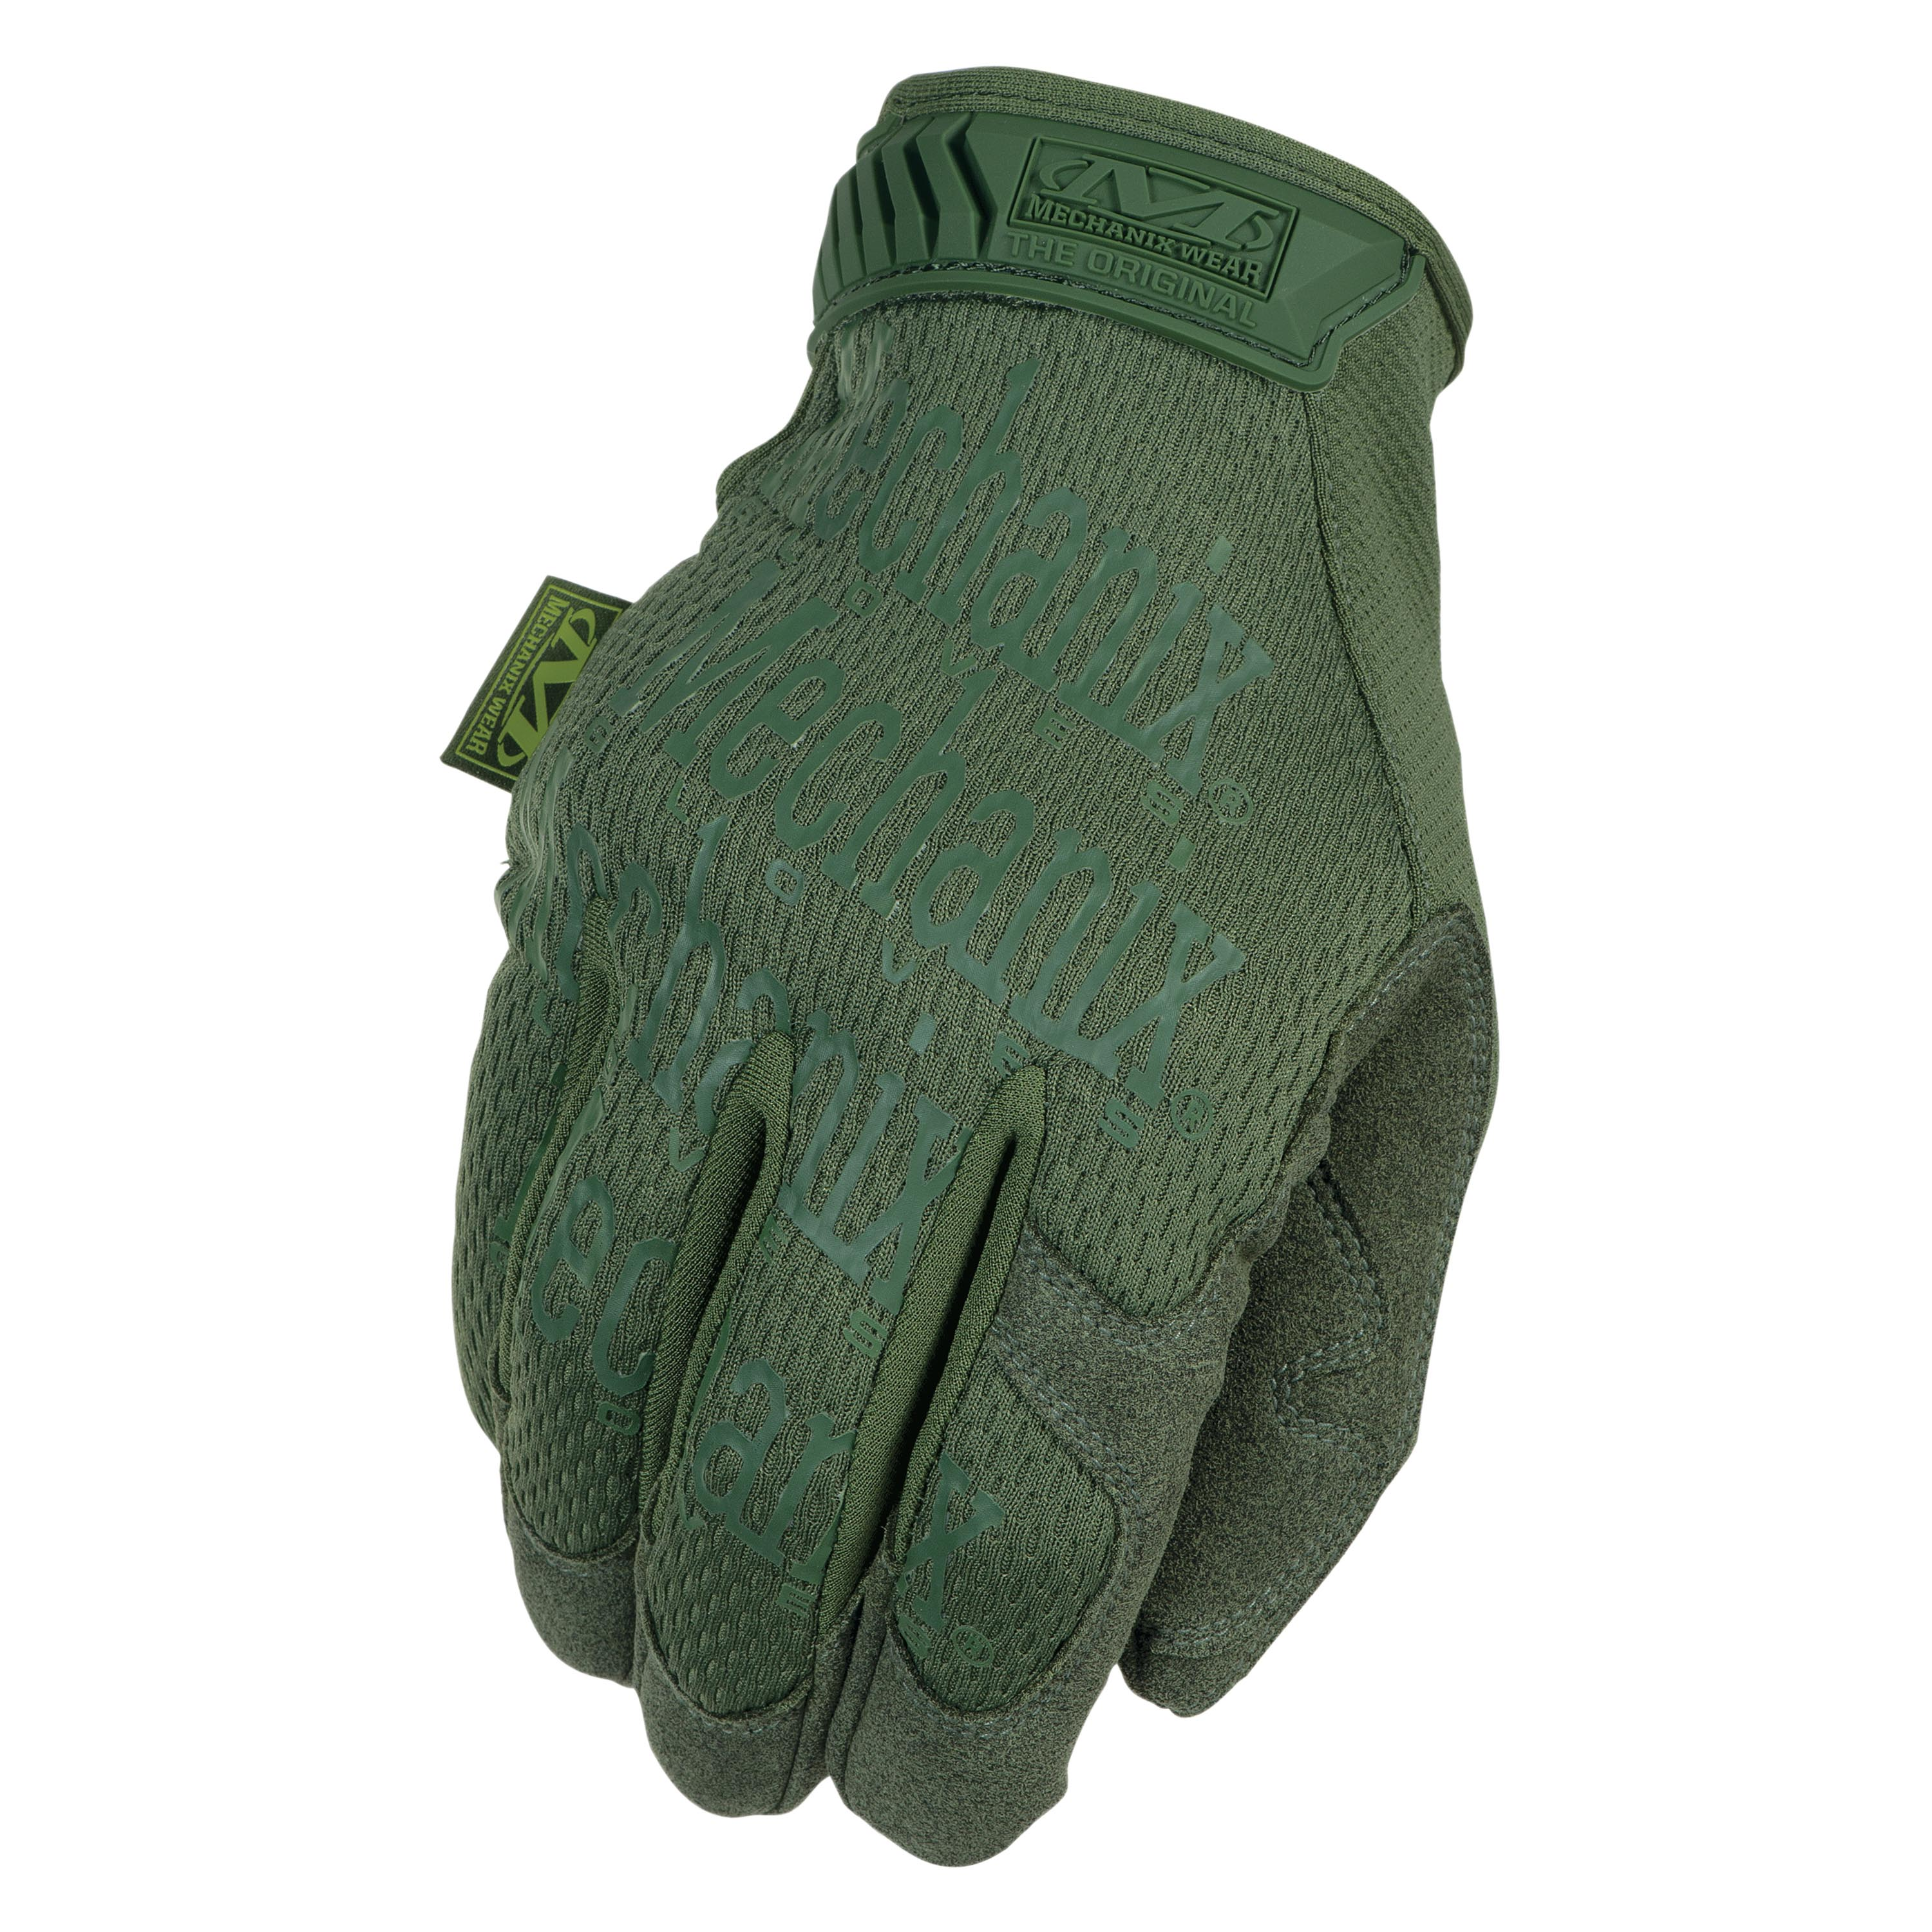 Mechanix Wear Gloves Original OD green